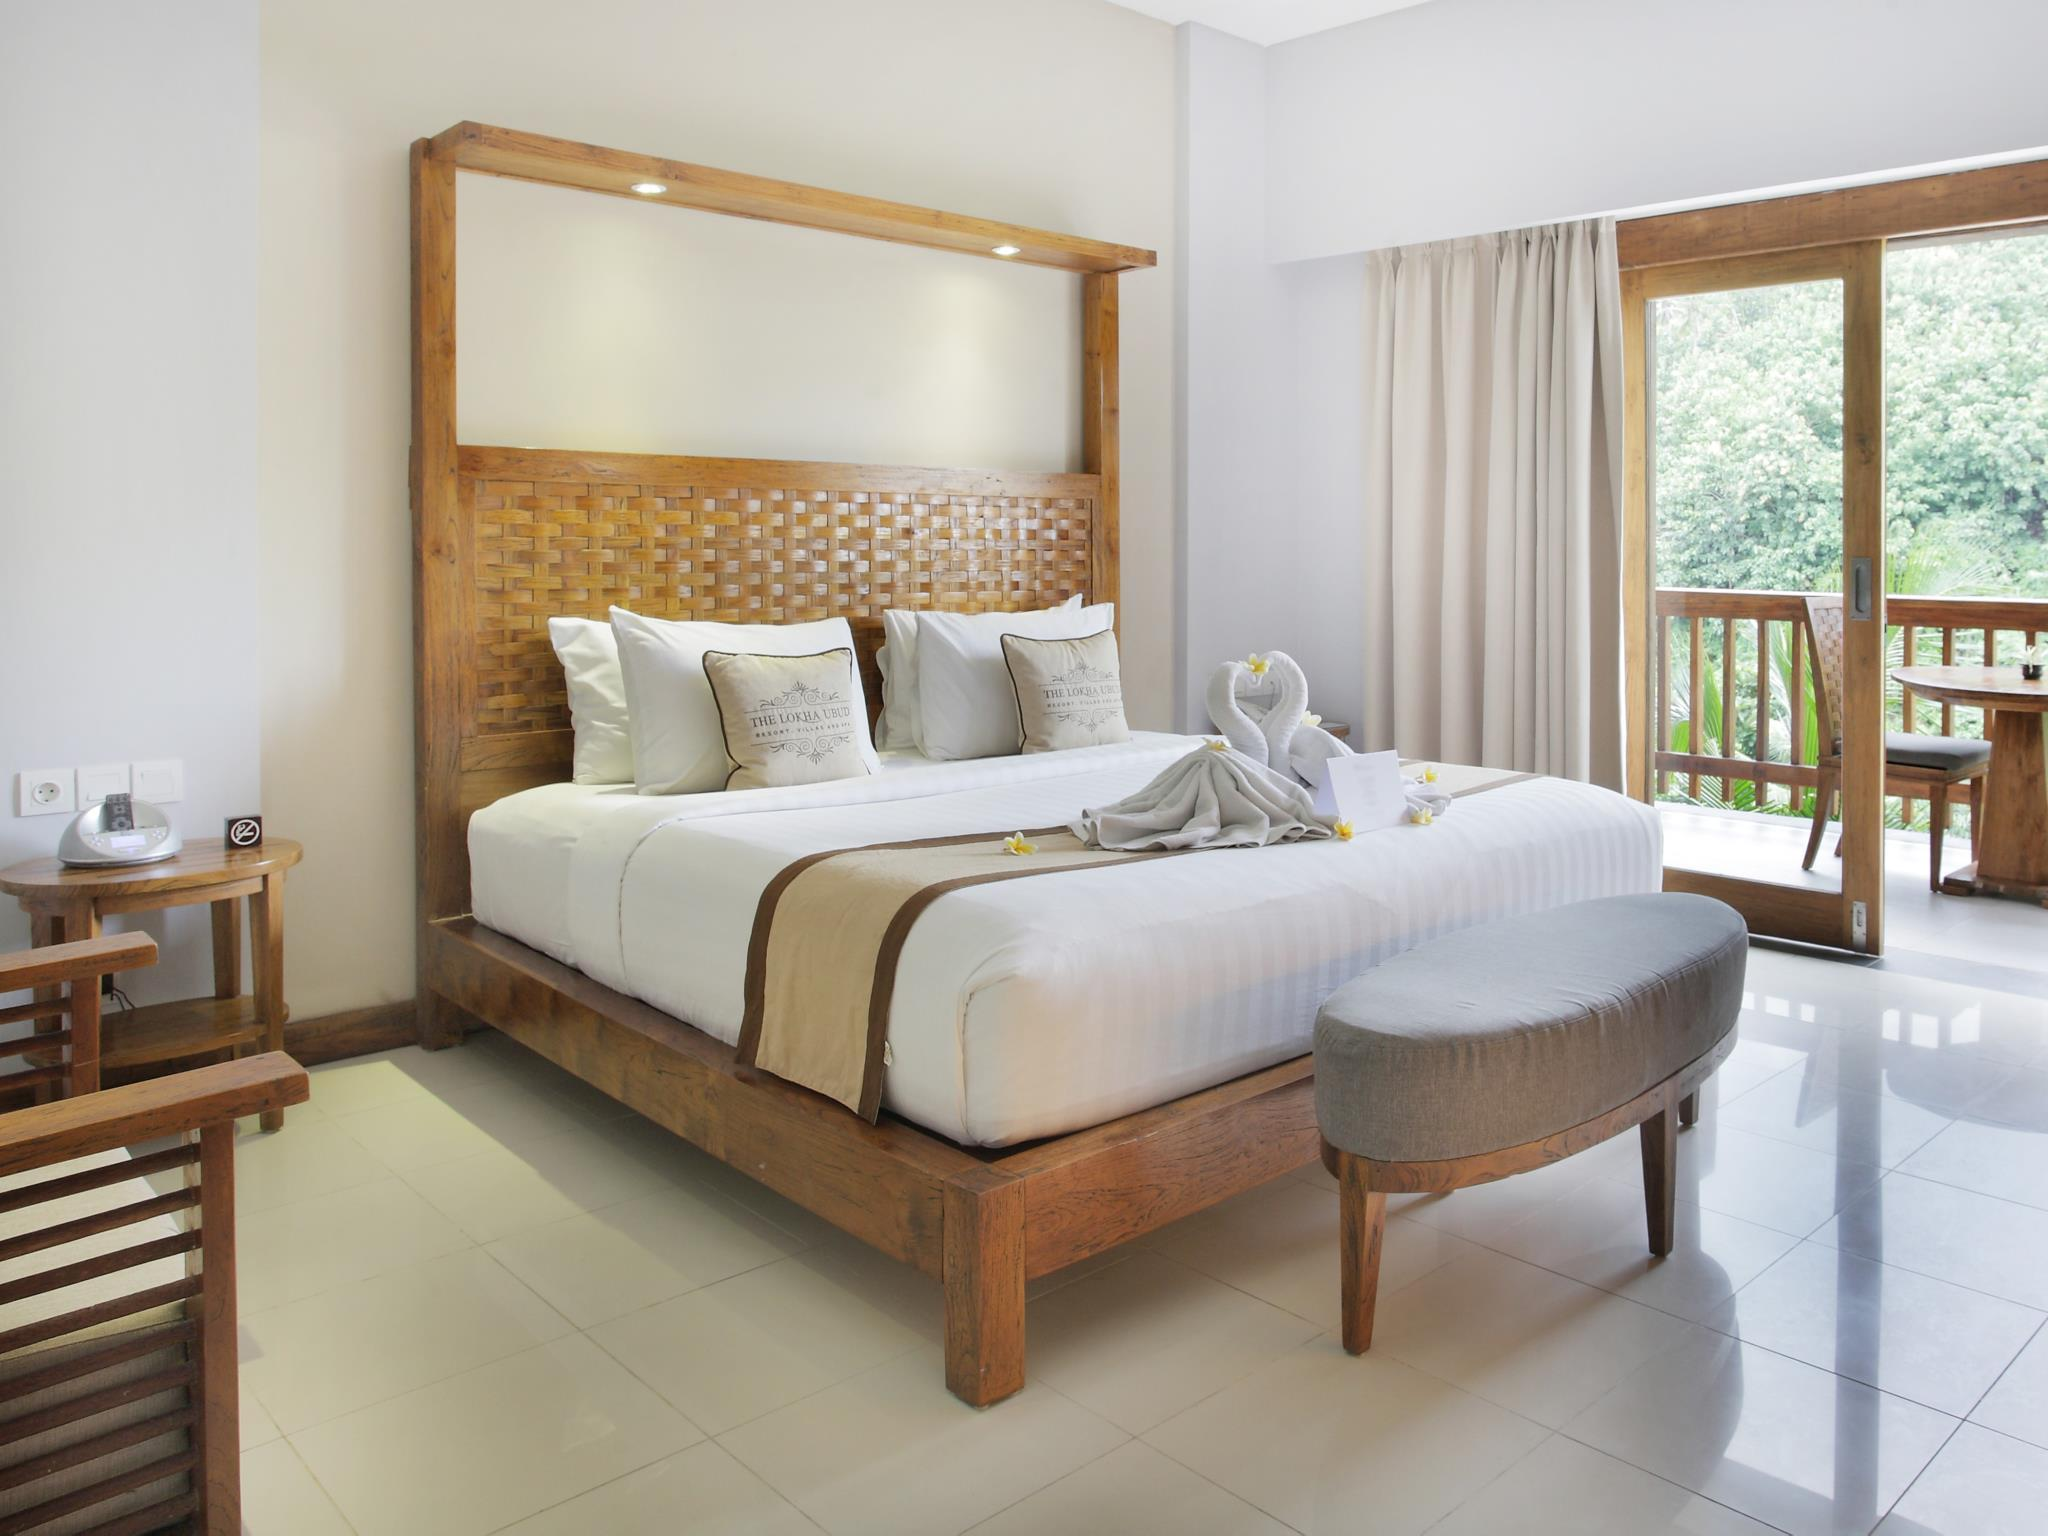 Kamar Double Deluxe – Paket Bulan Madu (Deluxe Double Room - Honeymoon Package)